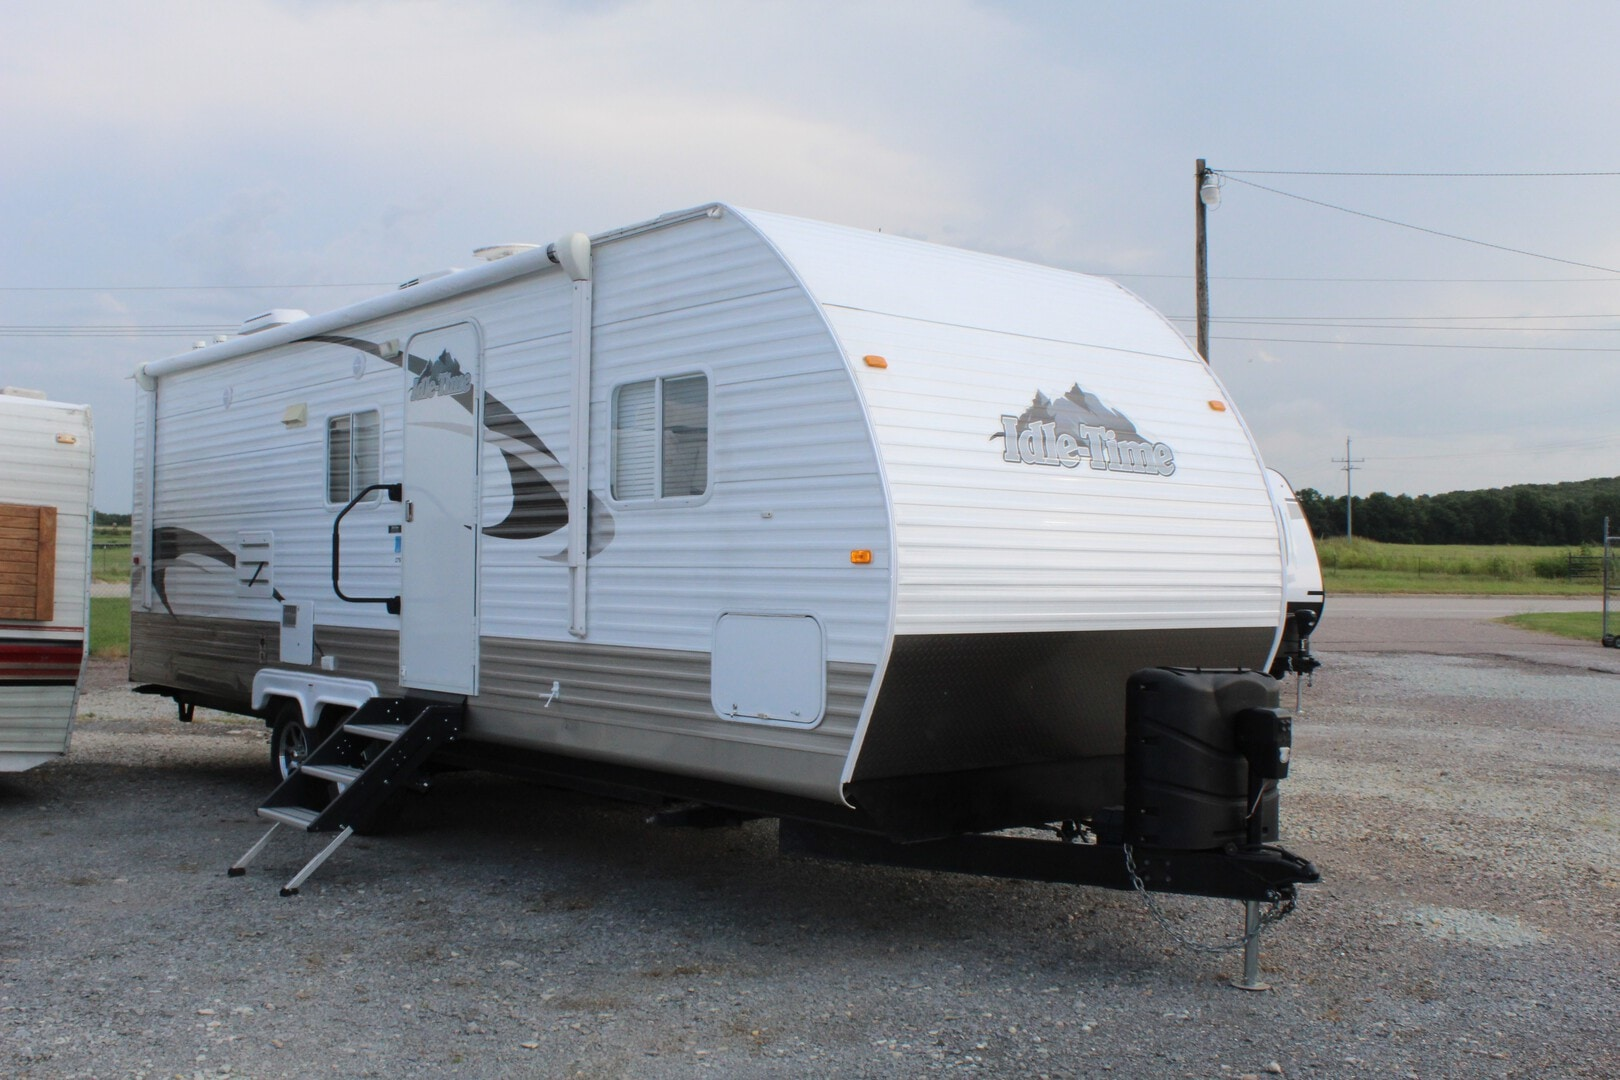 Used, 2020, Idle-Time, Idle-Time 279RBS, Travel Trailers